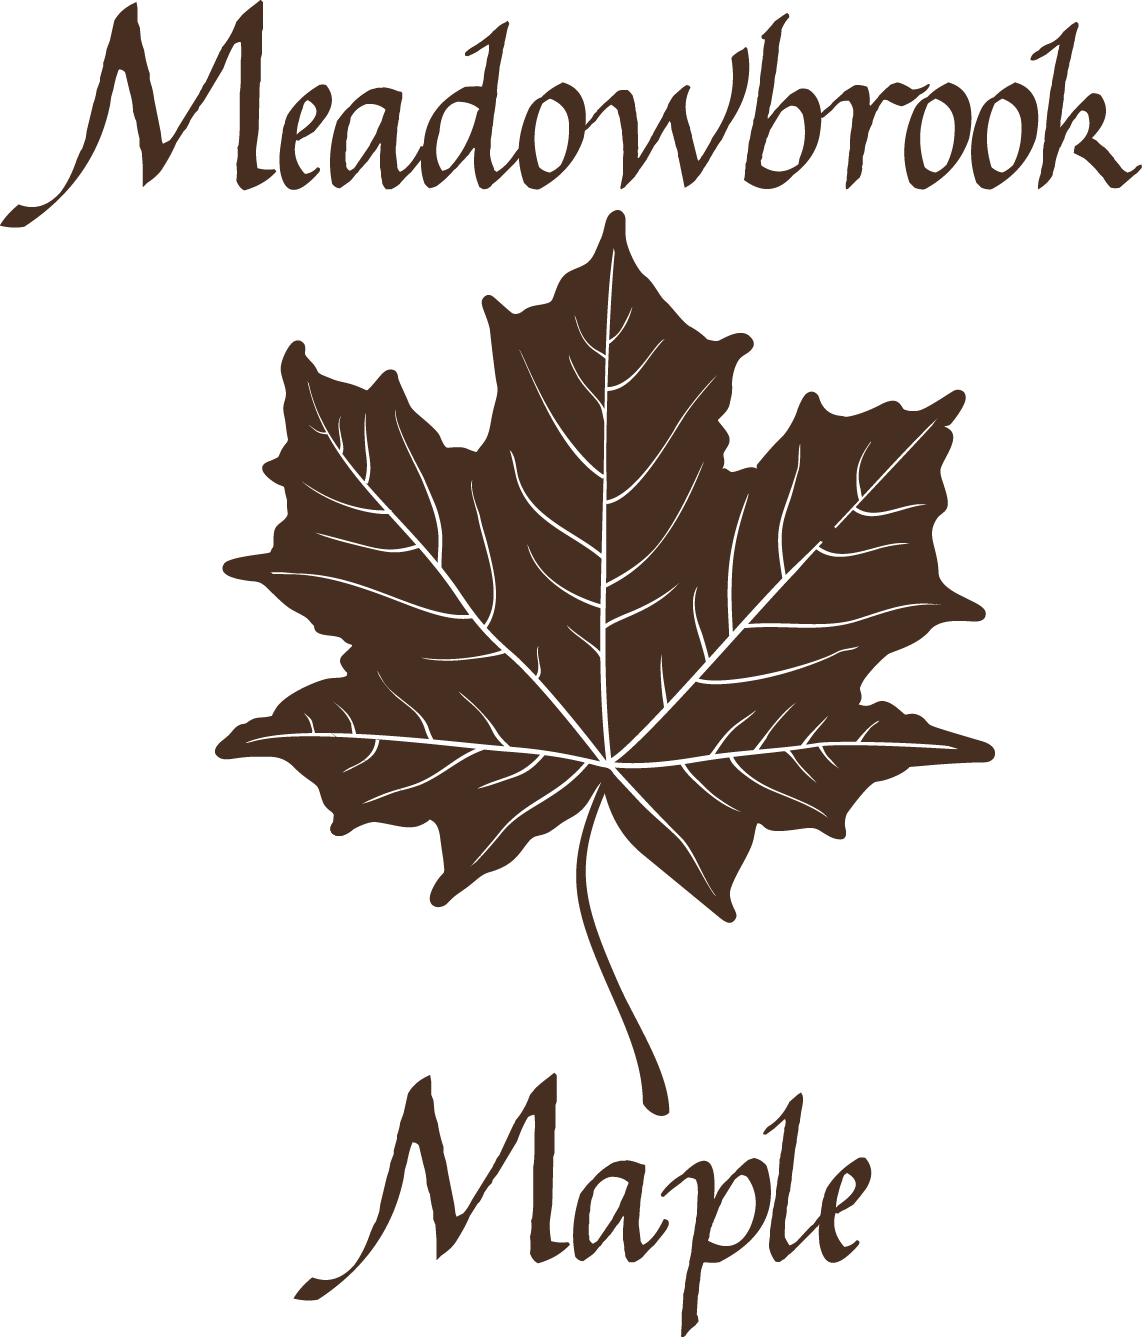 Meadowbrook Maple Syrup